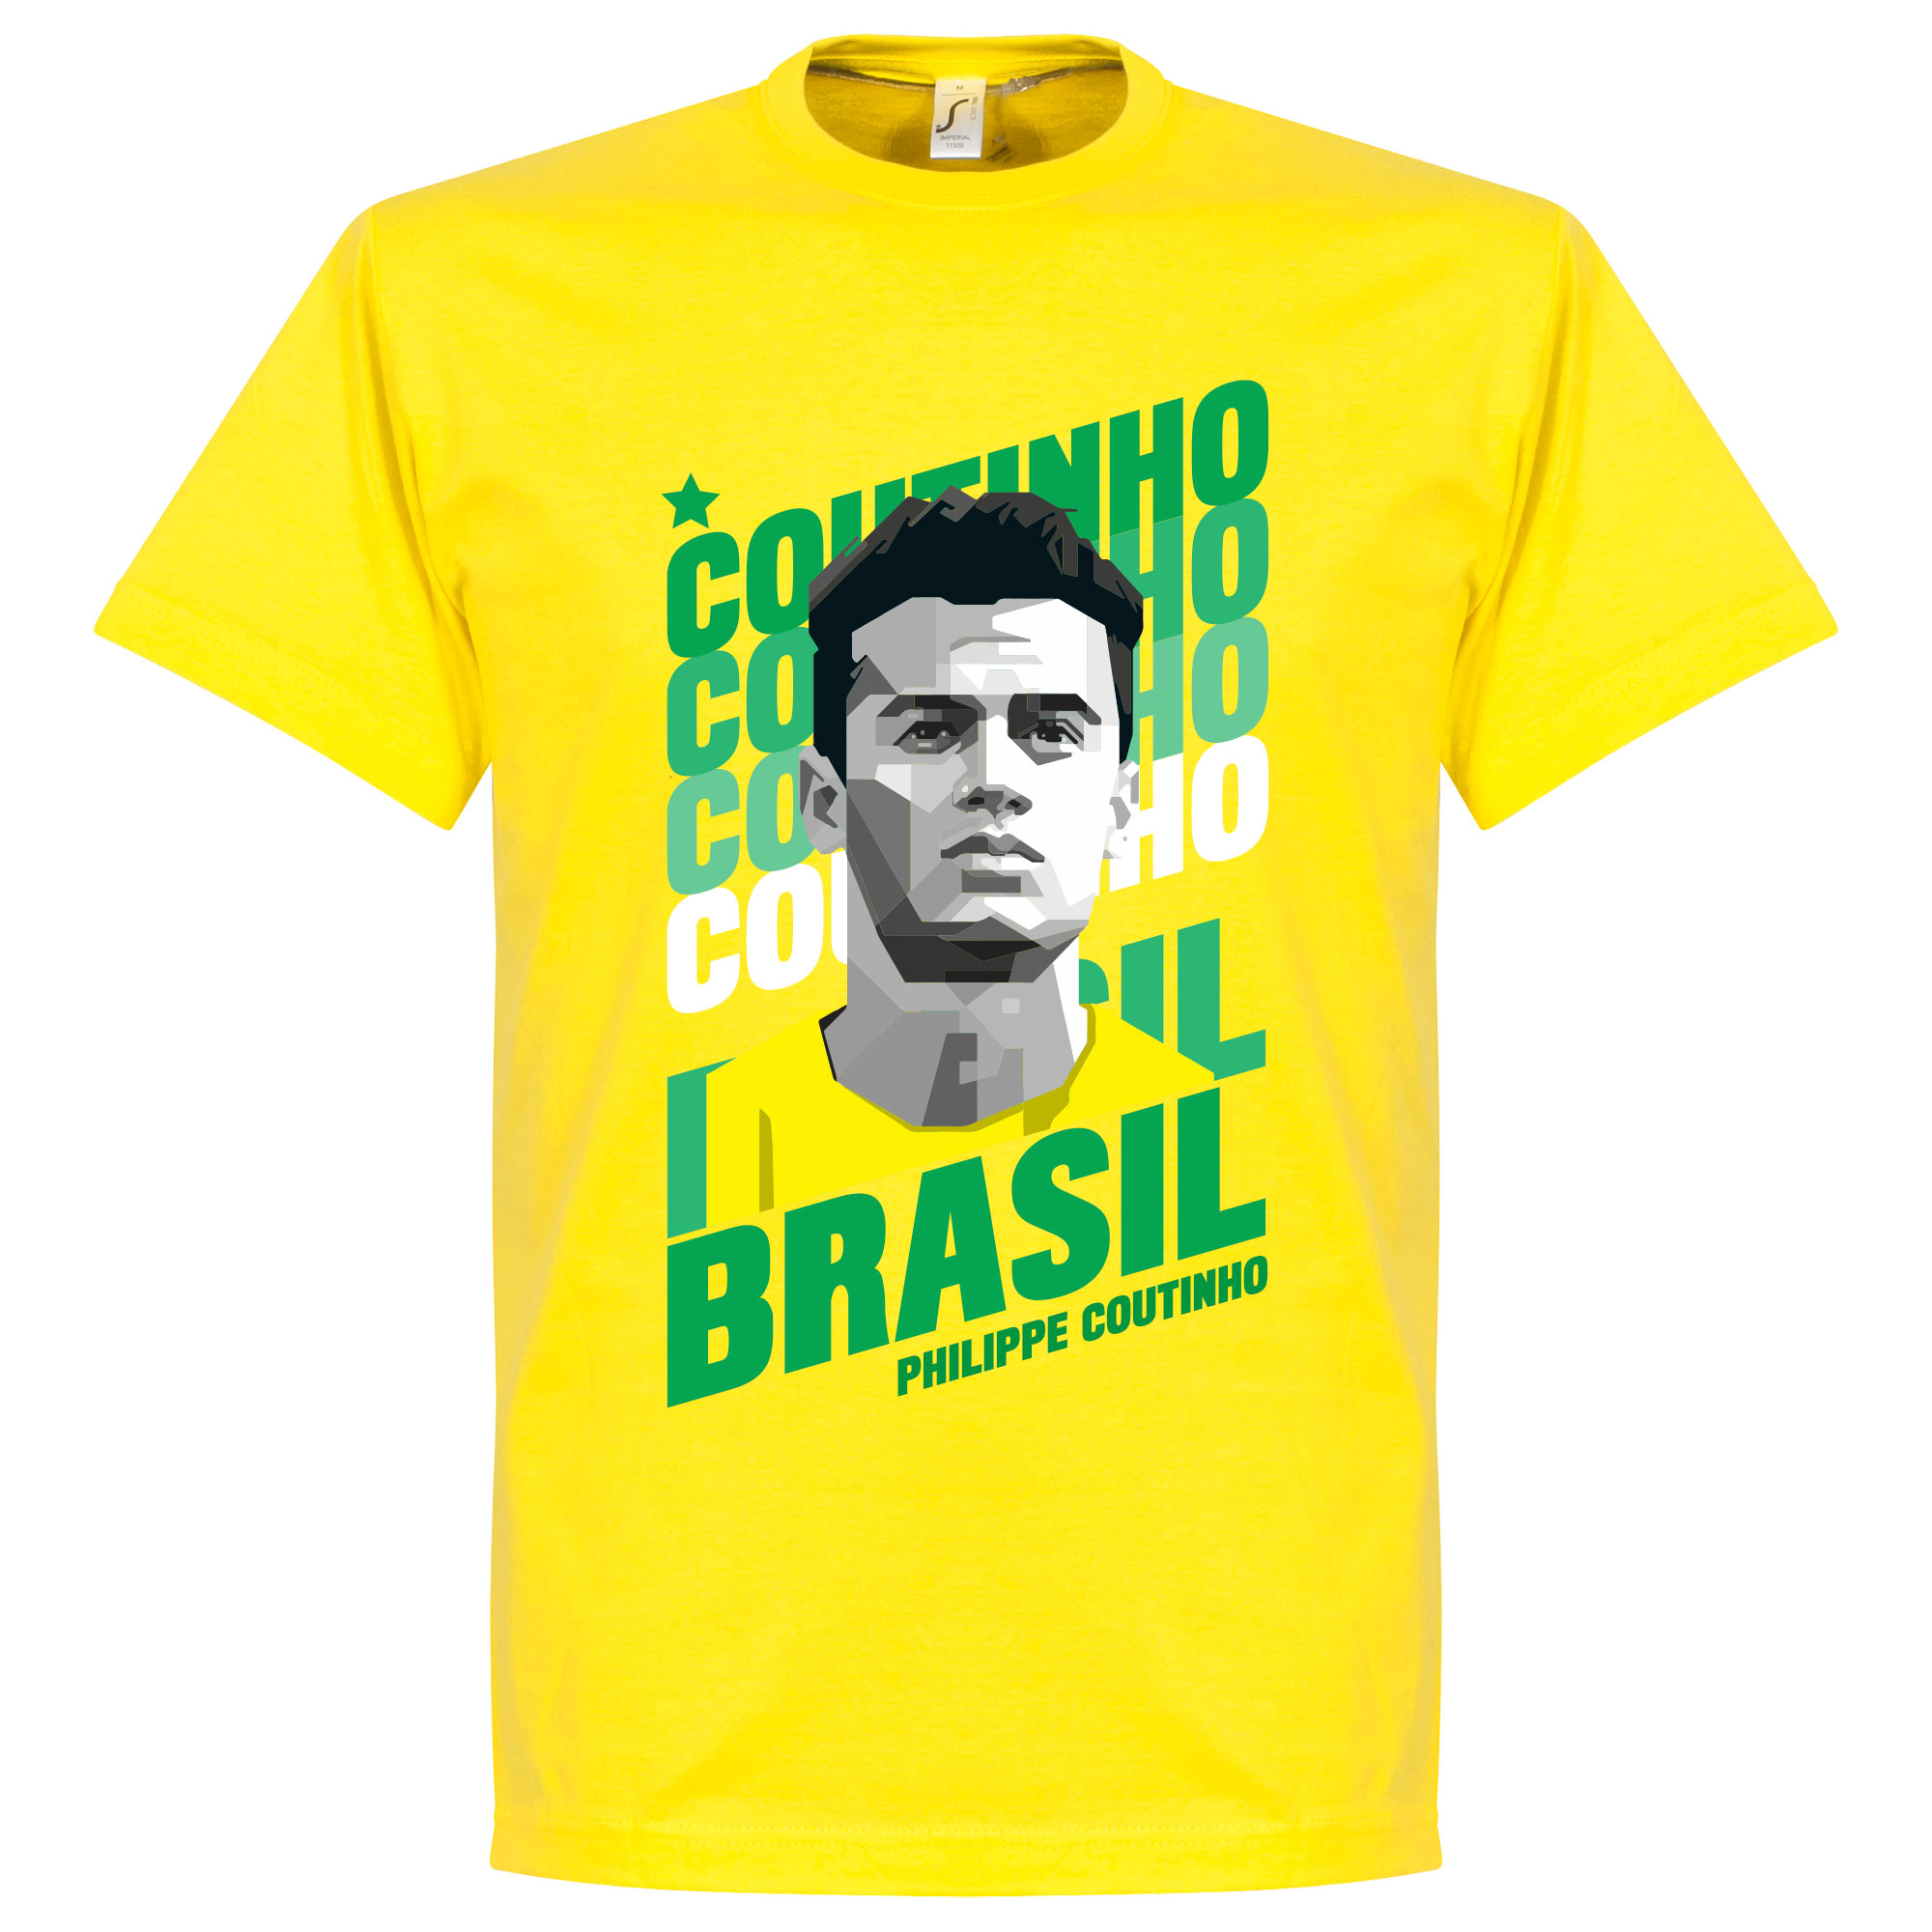 Coutinho Brazil Portrait Tee - Yellow - XL